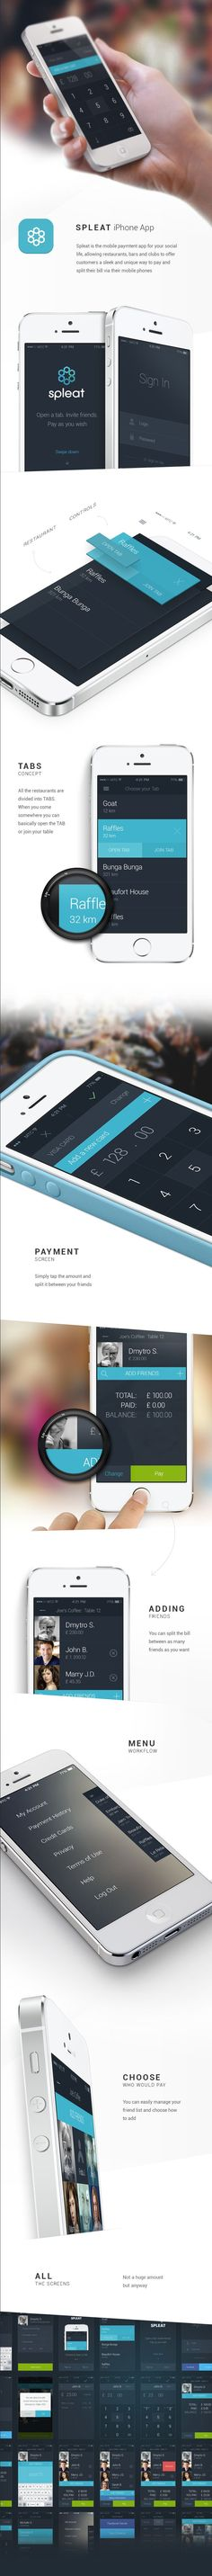 Spleat is the mobile paymtent app for your social life, allowing restaurants, bars and clubs to offer customers a sleek and unique way to pay and split their bill via their mobile phones - #app #iphone #behance: